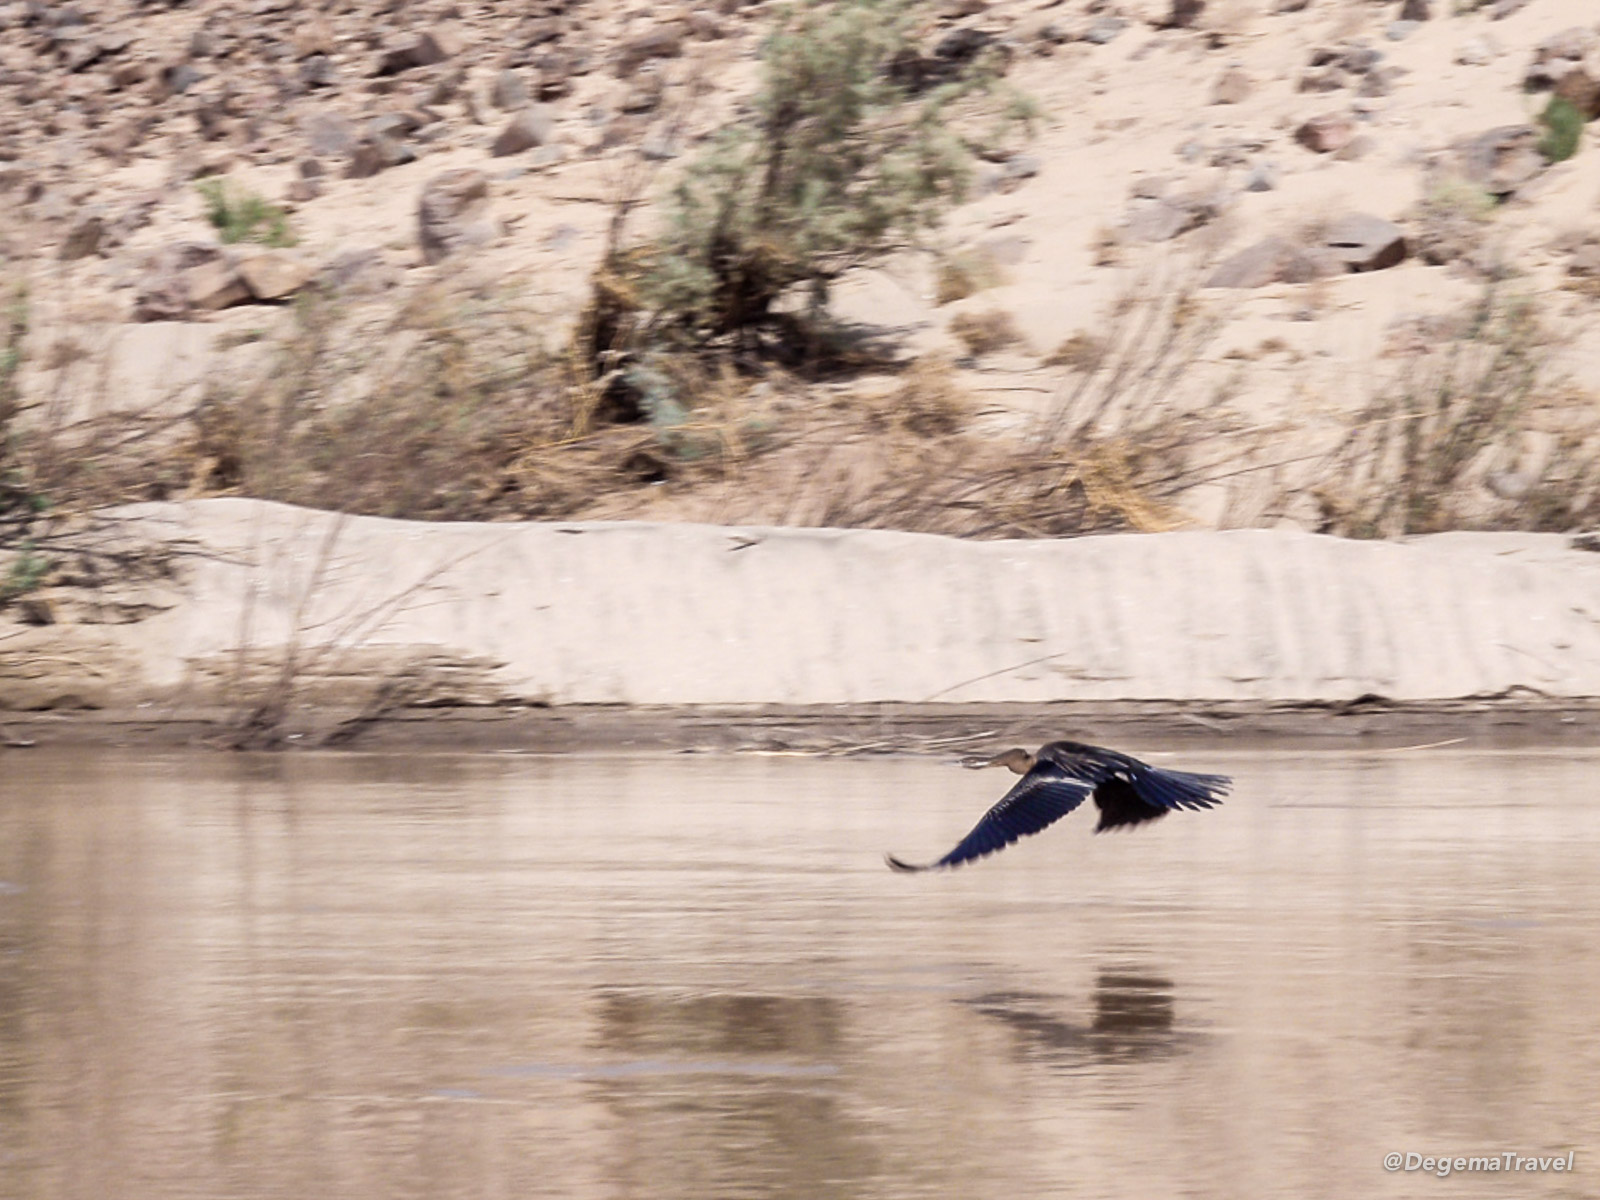 A bird swooping over the Orange River, Namibia